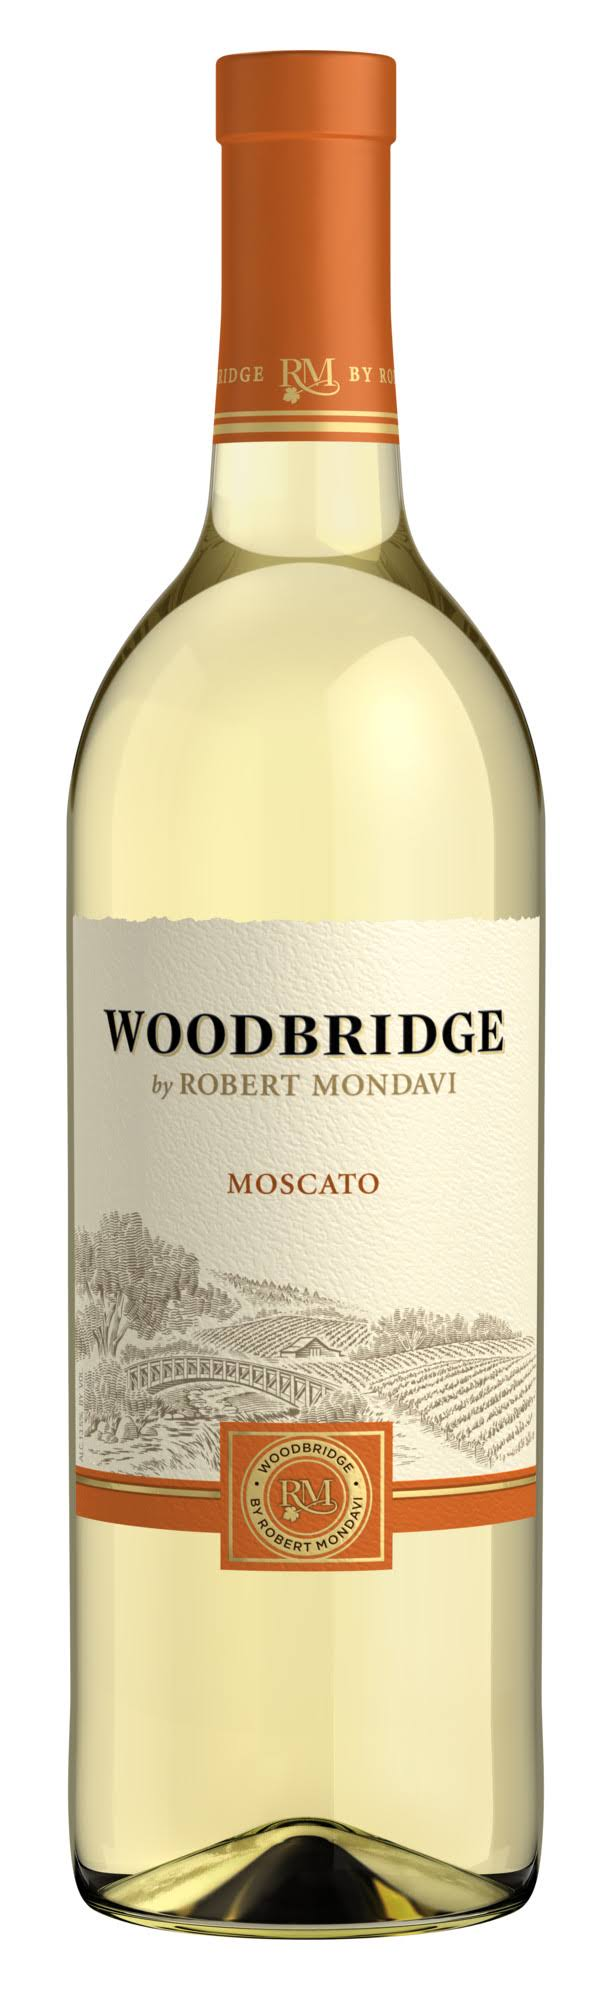 Woodbridge Moscato, California, 2010 - 750 ml